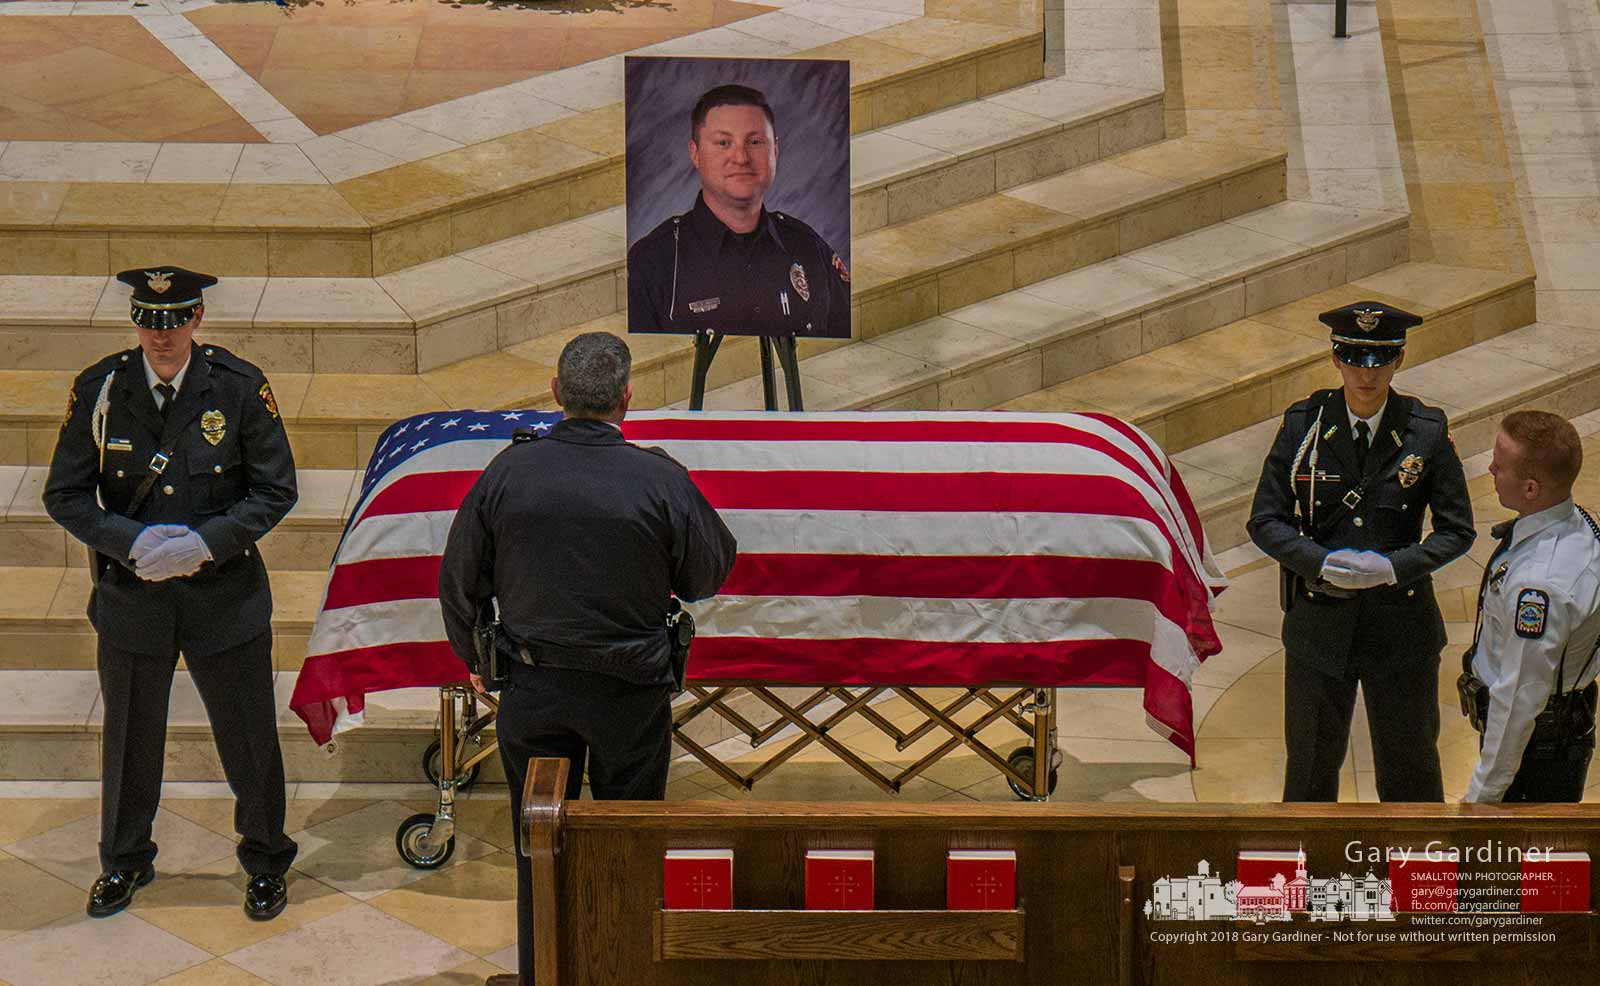 A police officer pauses with his head lowered as he passes the casket of Westerville Police Officer Eric Joerning who was killed on duty last week. My Final Photo for Feb. 16, 2018.